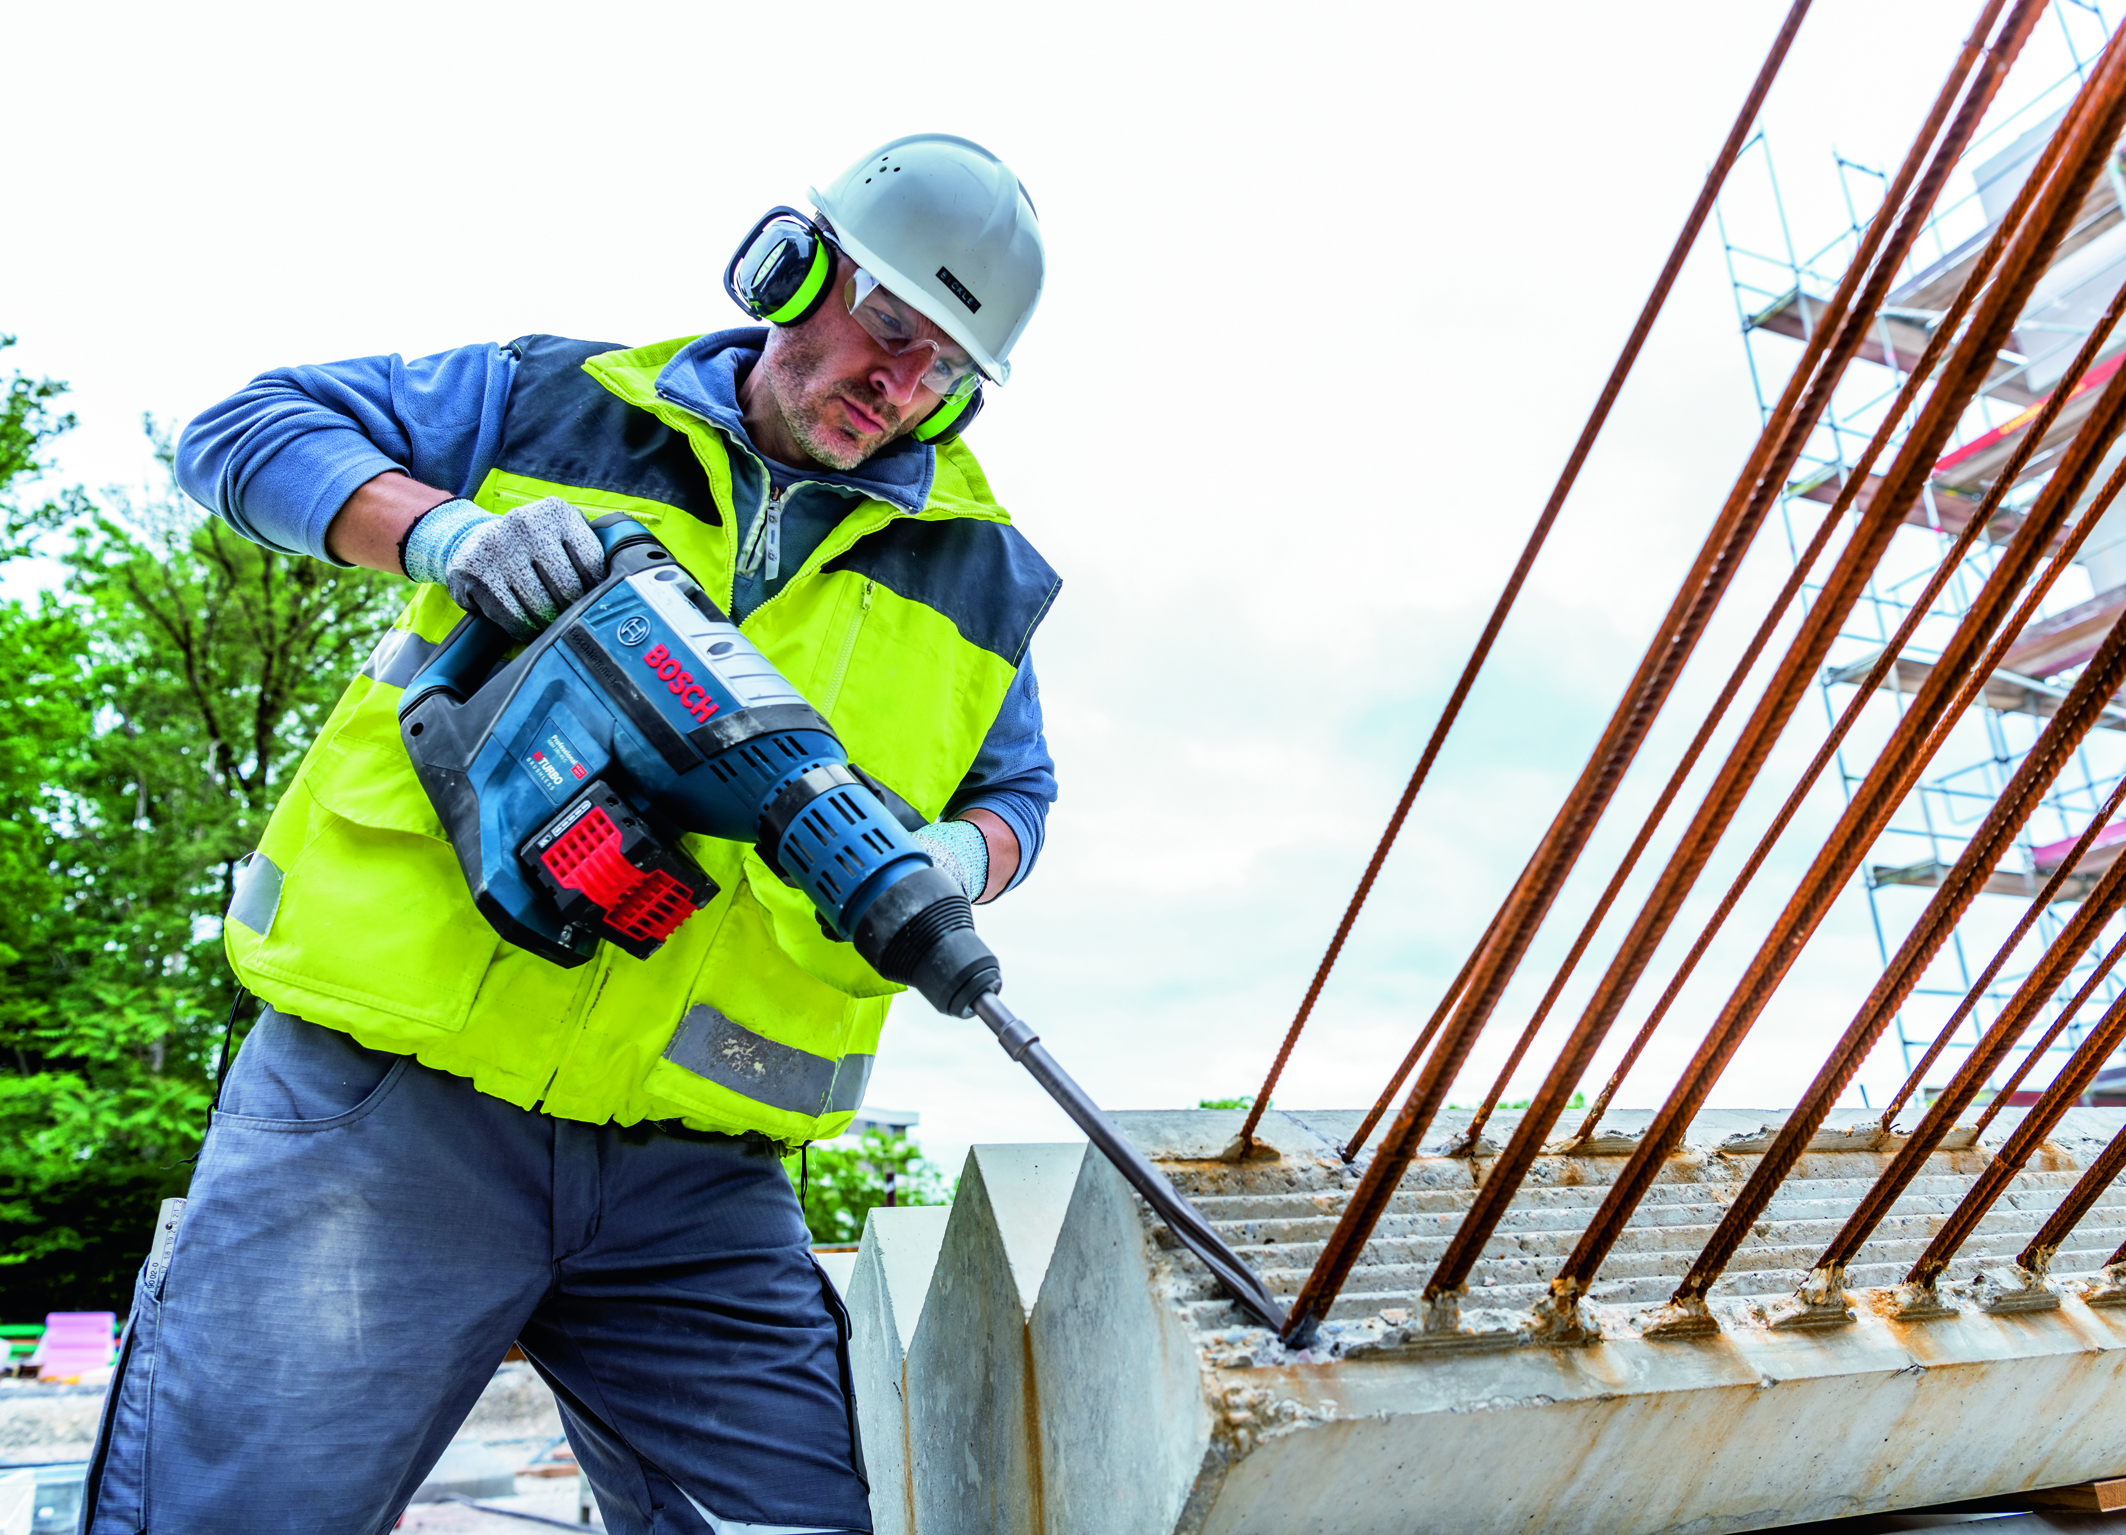 Cordless tools more powerful than ever before: GBH 18V-45 C Professional Biturbo hammer from Bosch for professionals